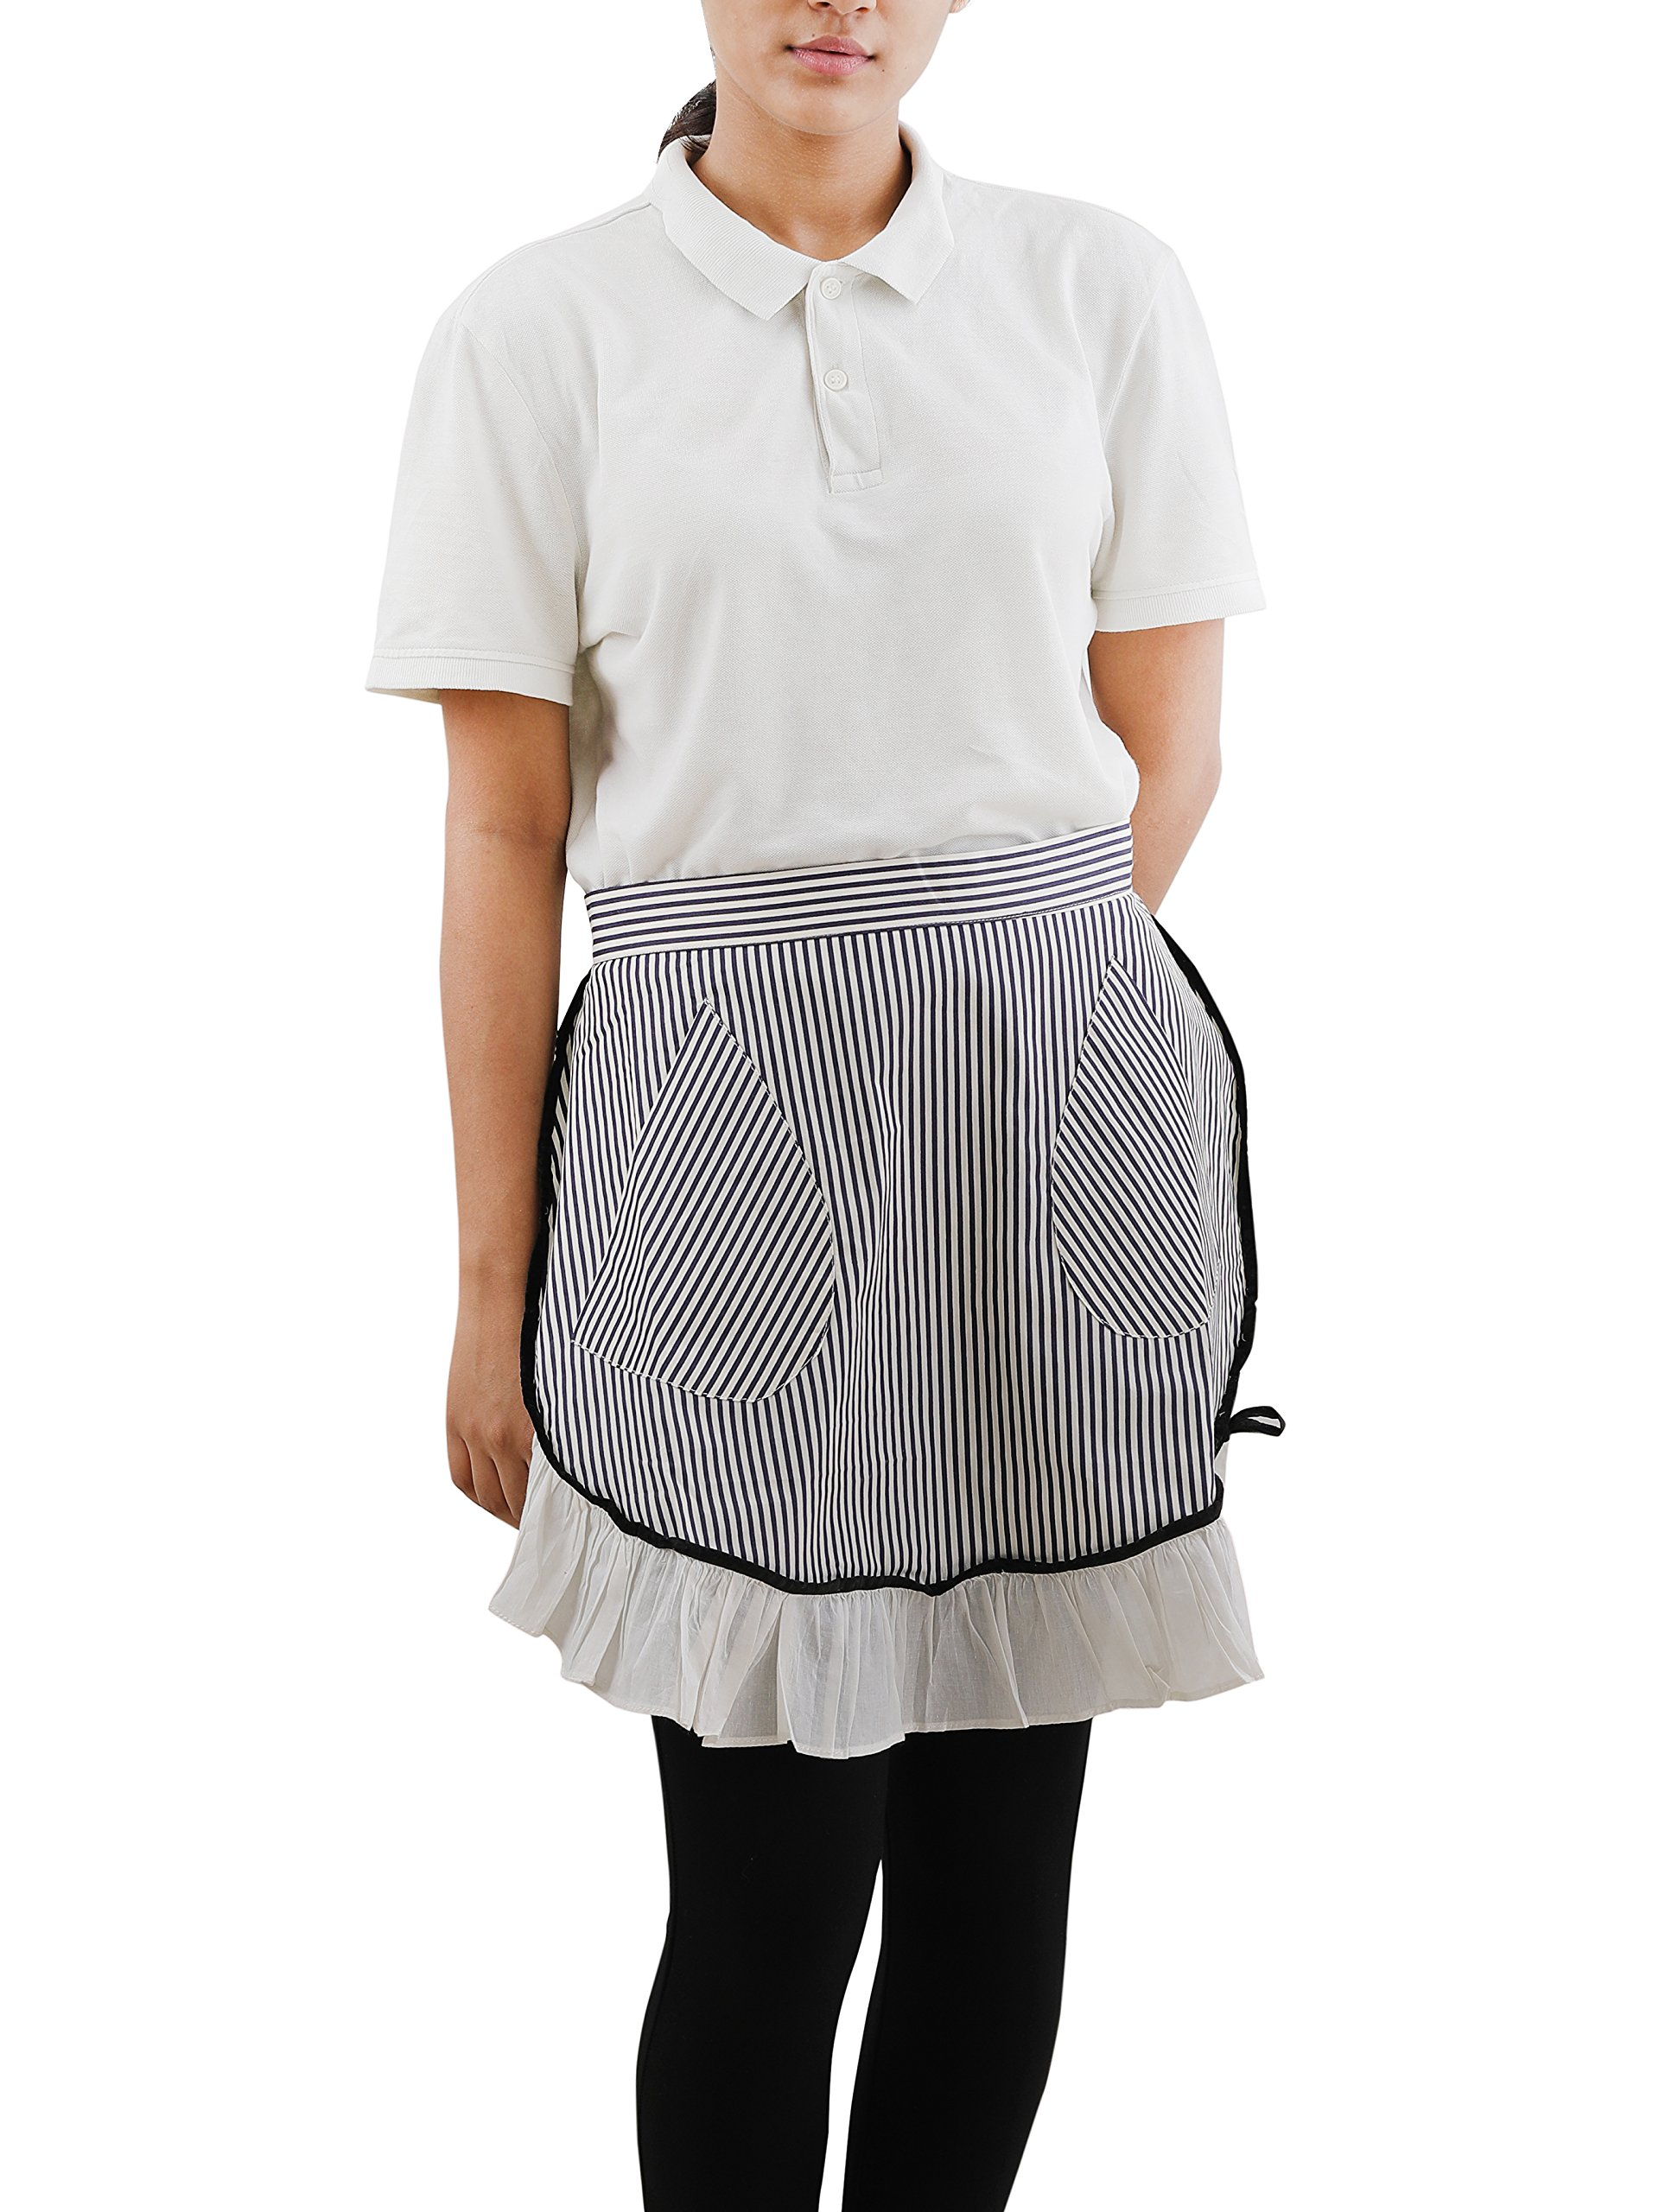 Kitchen Apron with Adjustable Bib, Design Apron with Pockets, 100% Cotton Apron for Women & Men, Half Apron in classic stripe pattern suitable for Home Restaurant Cooking BBQ Aprons